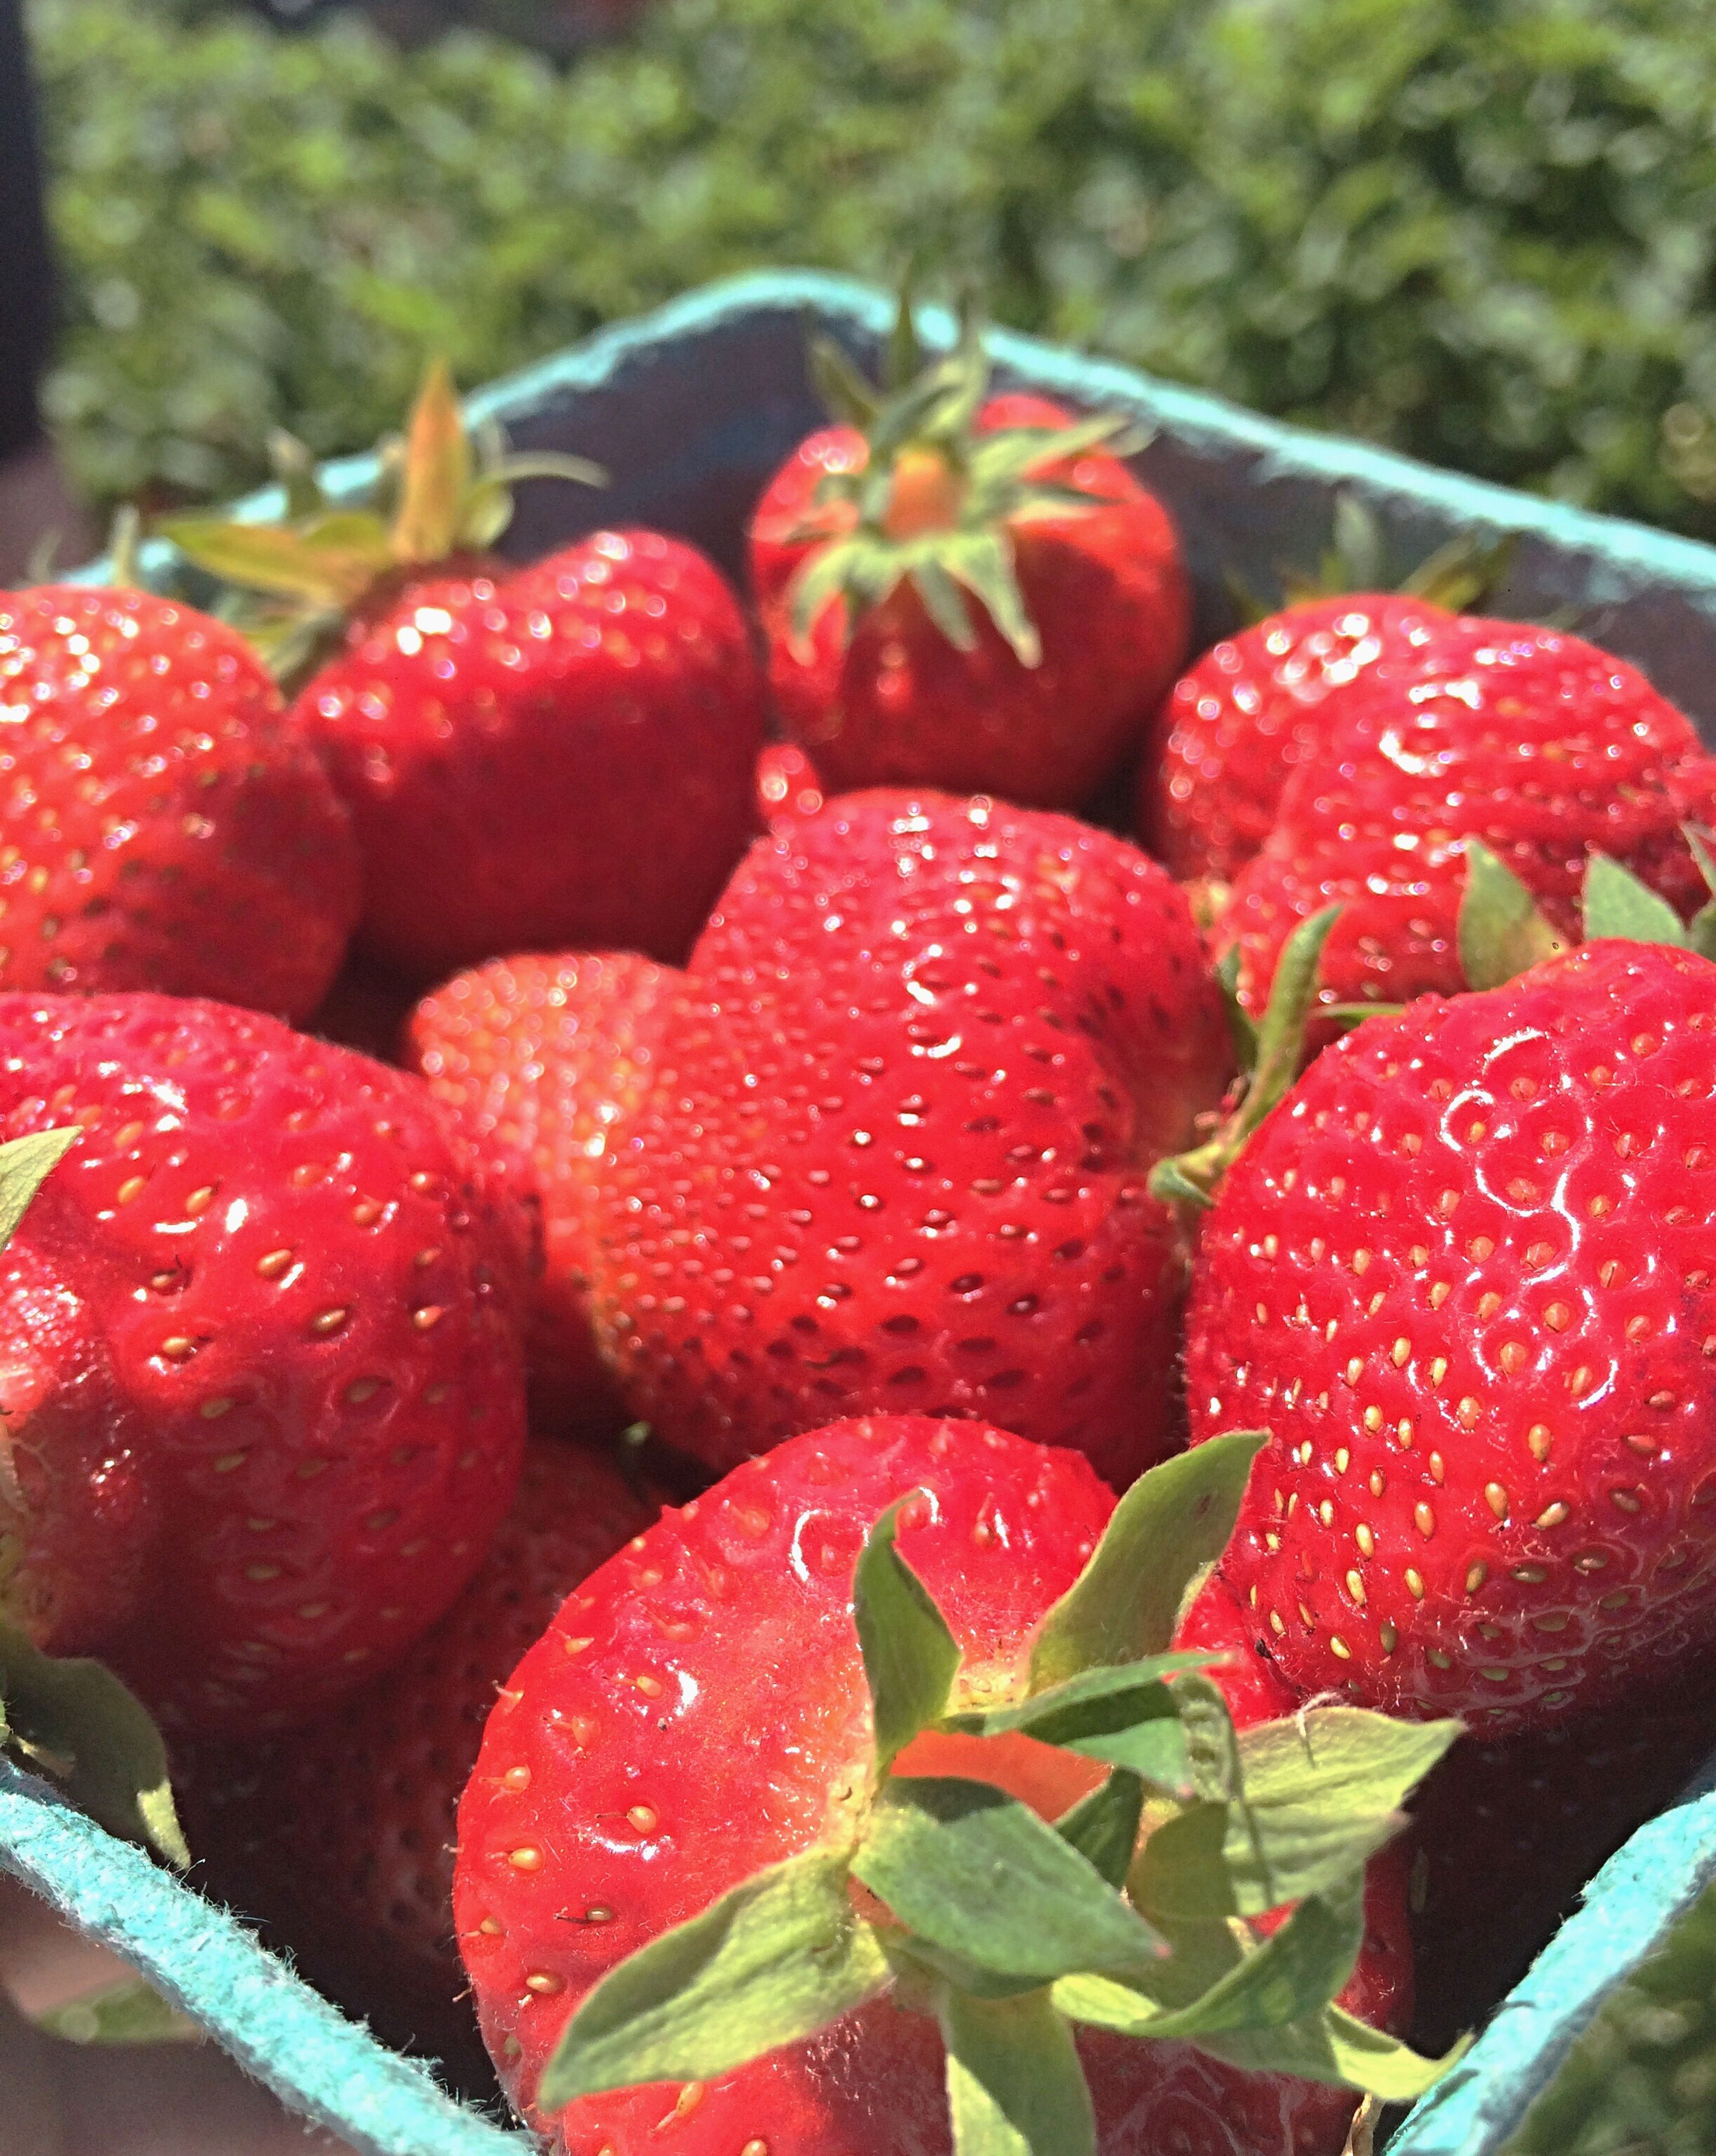 fruit, red, freshness, strawberry, food and drink, growth, food, day, close-up, healthy eating, leaf, outdoors, no people, water, nature